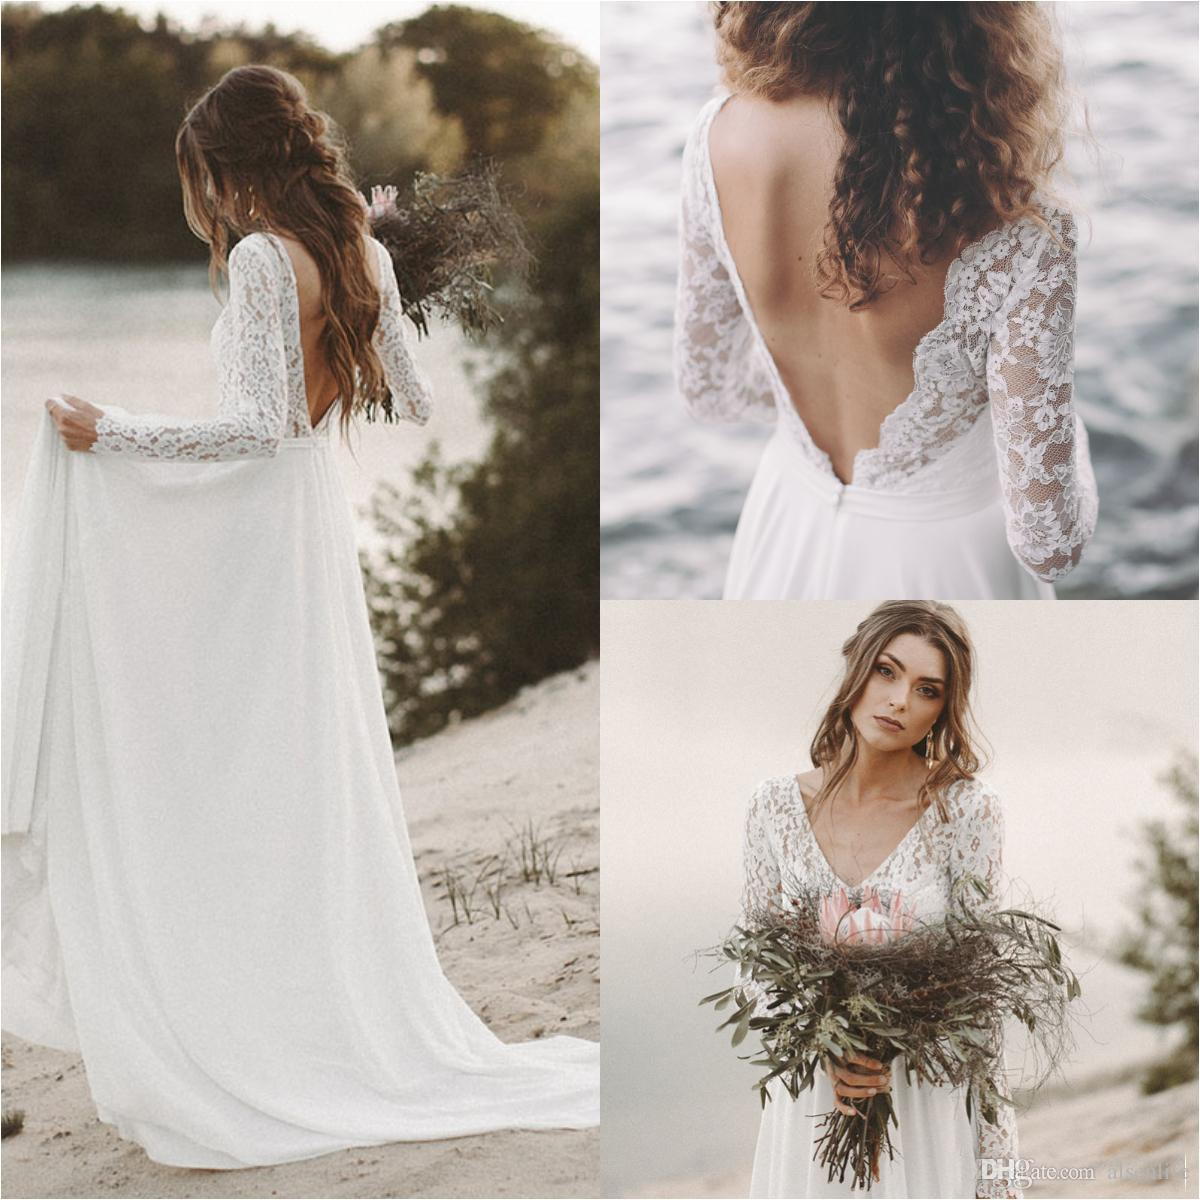 396b6377e1 Discount Simple Fall White Lace Country Beach Wedding Dresses V Neck Full  Sleeve Chiffon Low Back Bohemian Bridal Gowns Slim Casual Bride Dresses A  Line ...